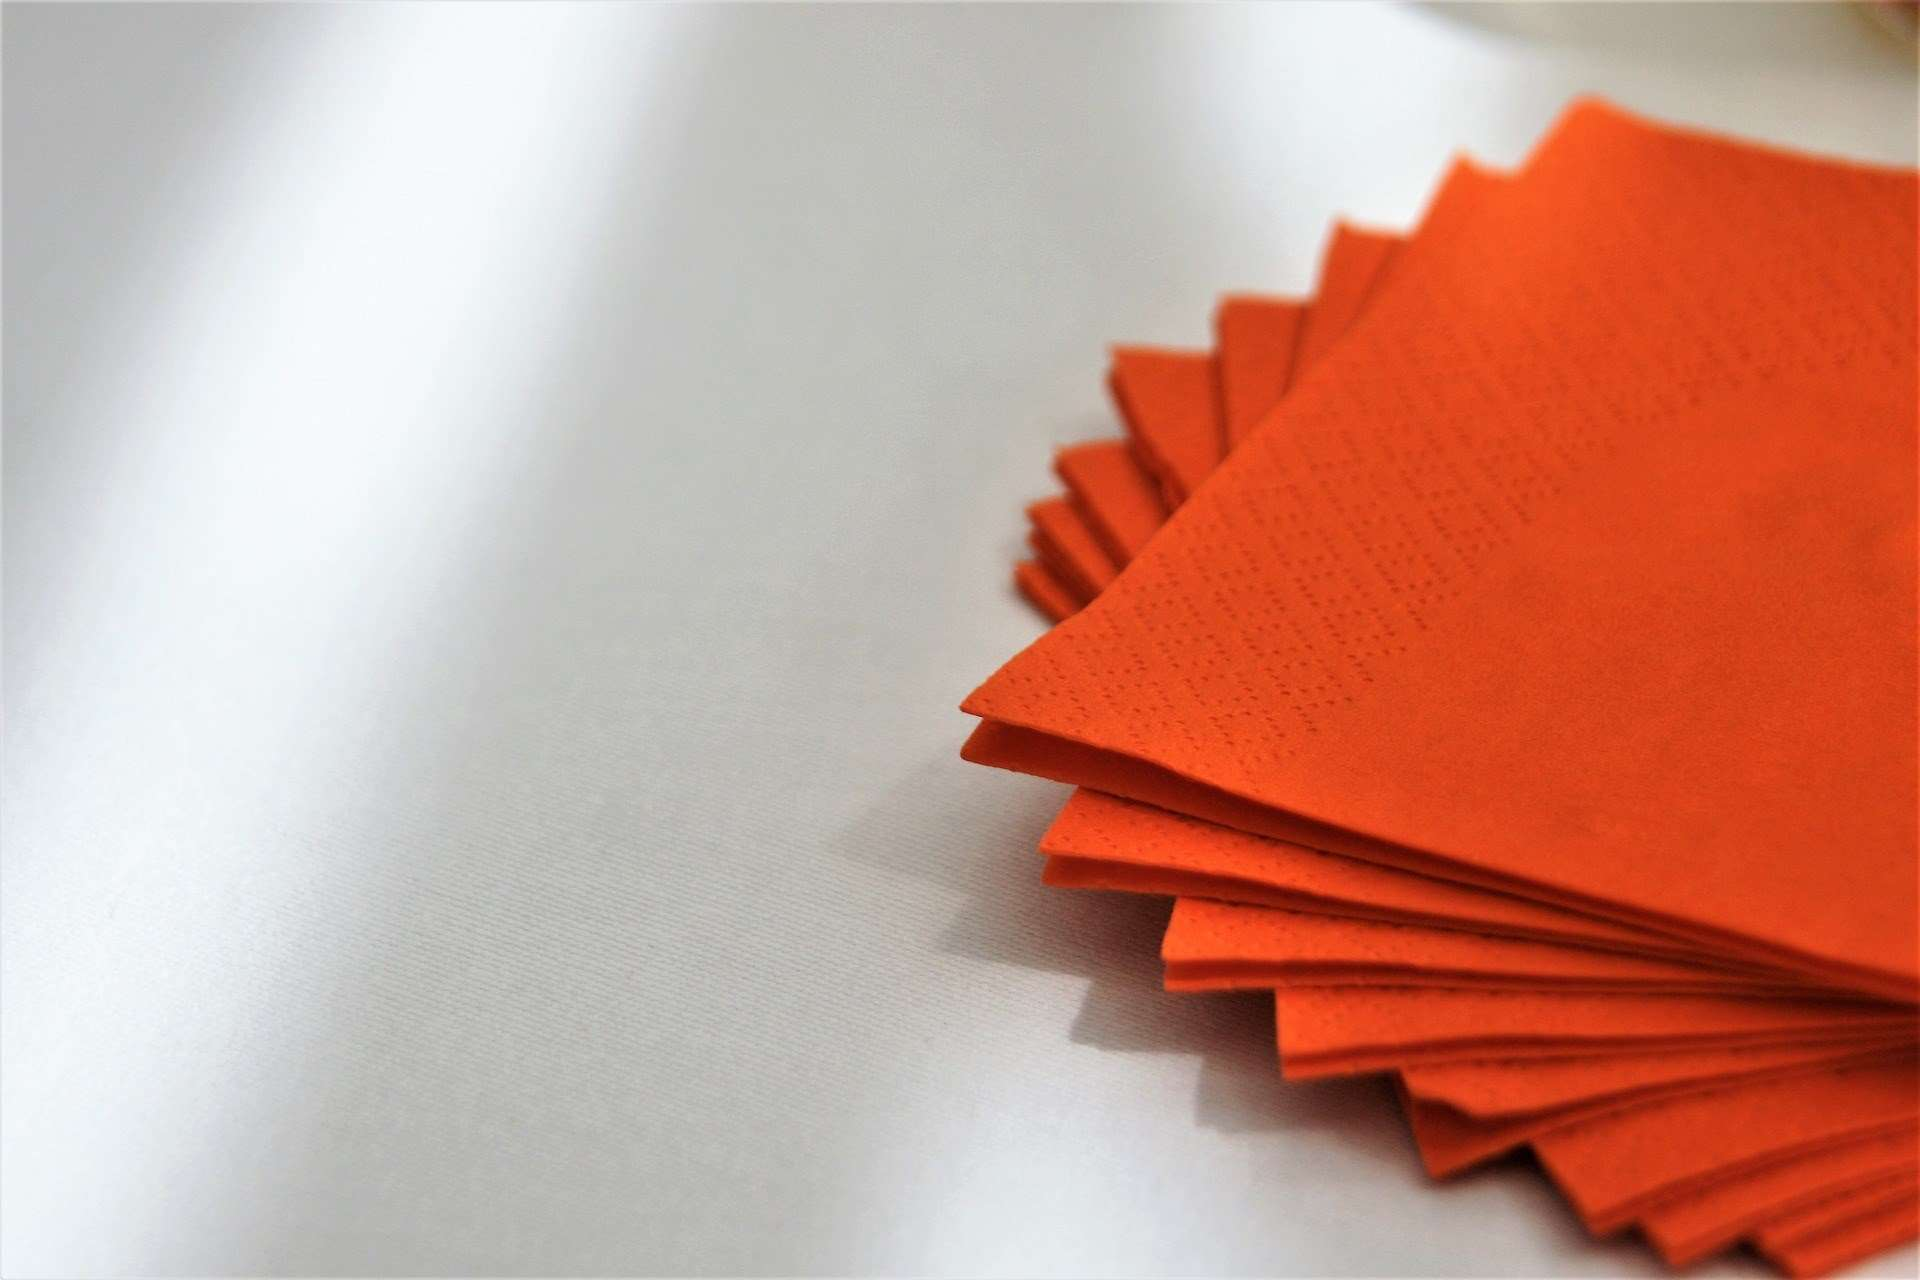 Swan Mill makes paper products like napkins and Christmas crackers